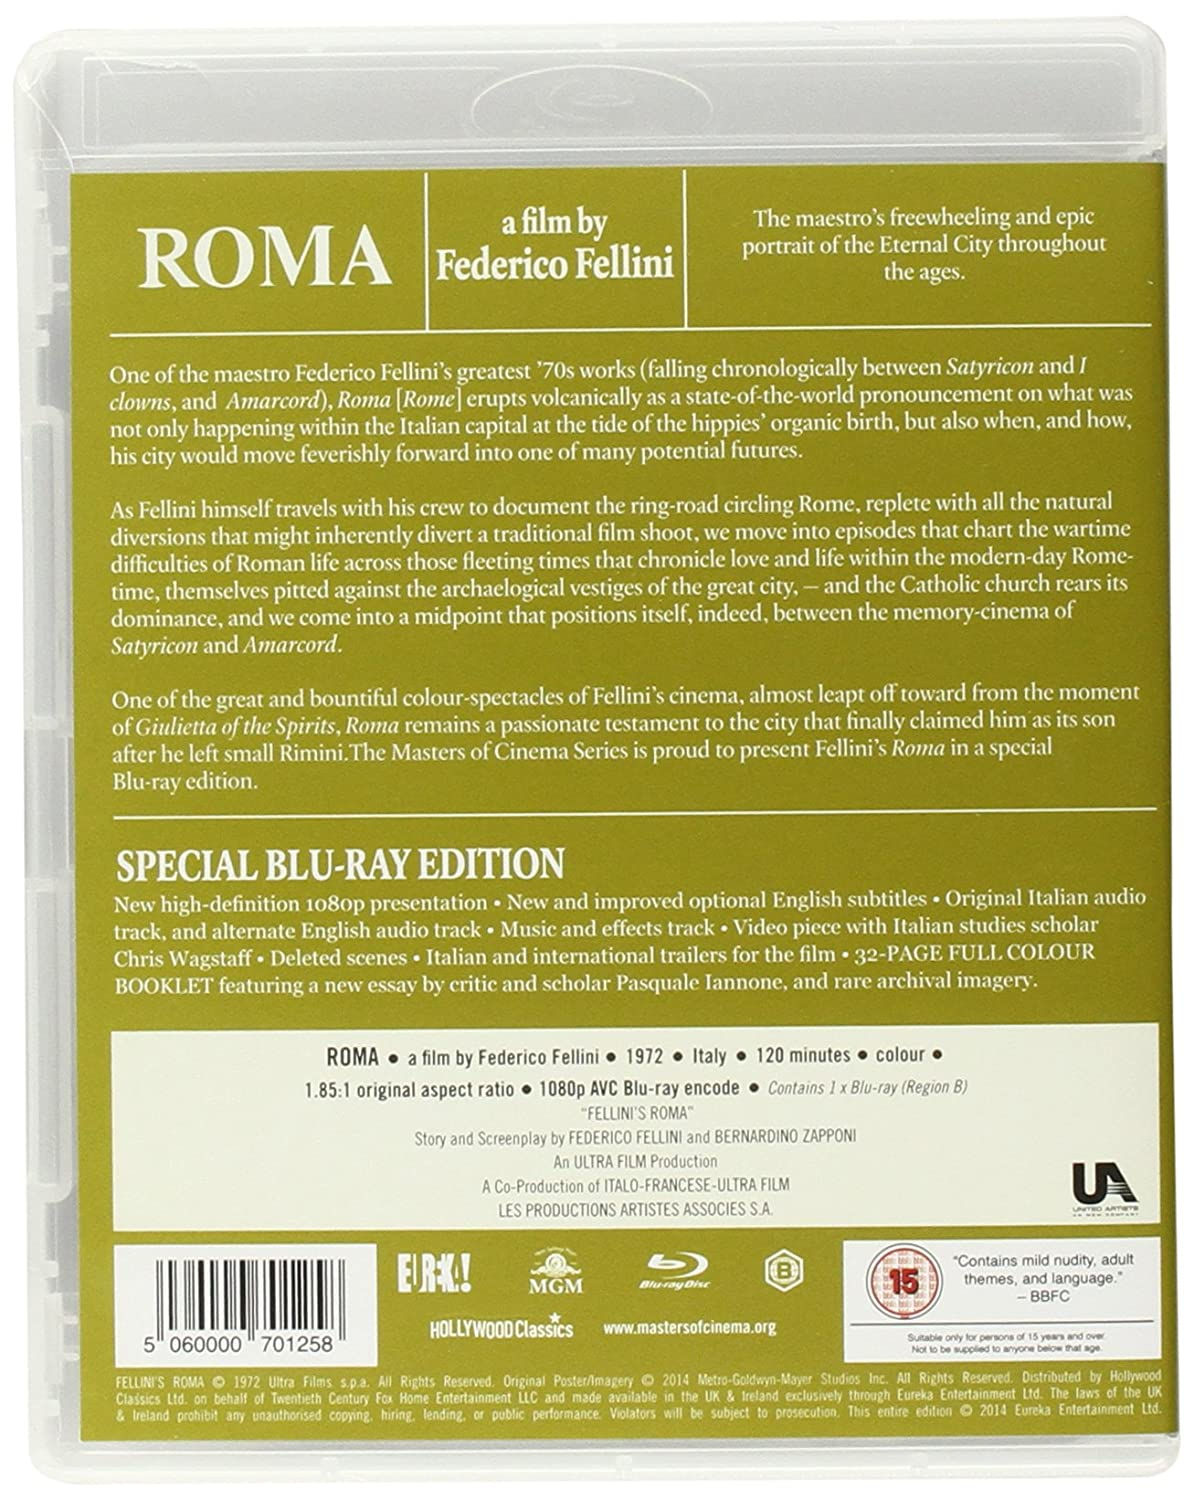 roma masters of cinema blu ray co uk federico fellini roma masters of cinema blu ray co uk federico fellini dvd blu ray